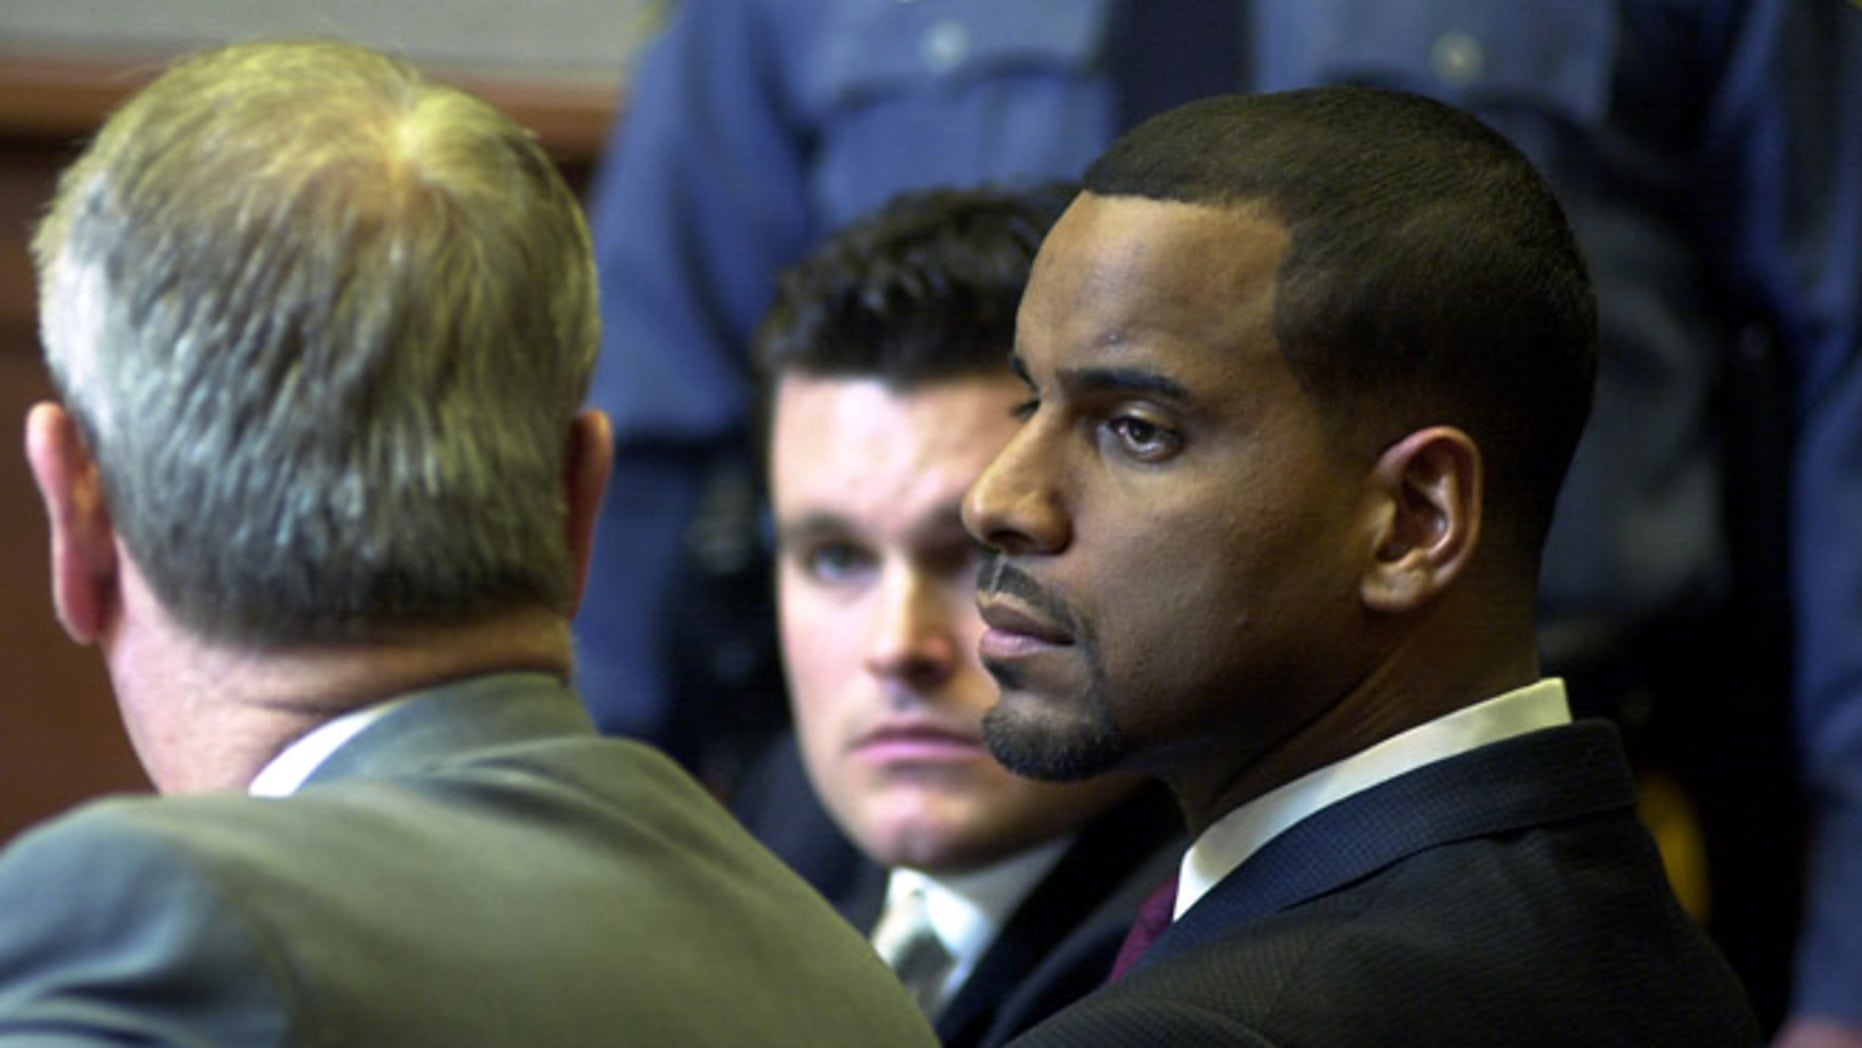 FILE 2002: Former NBA All-Star Jayson Williams has been charged with drunken driving after he crashed his vehicle in upstate New York.